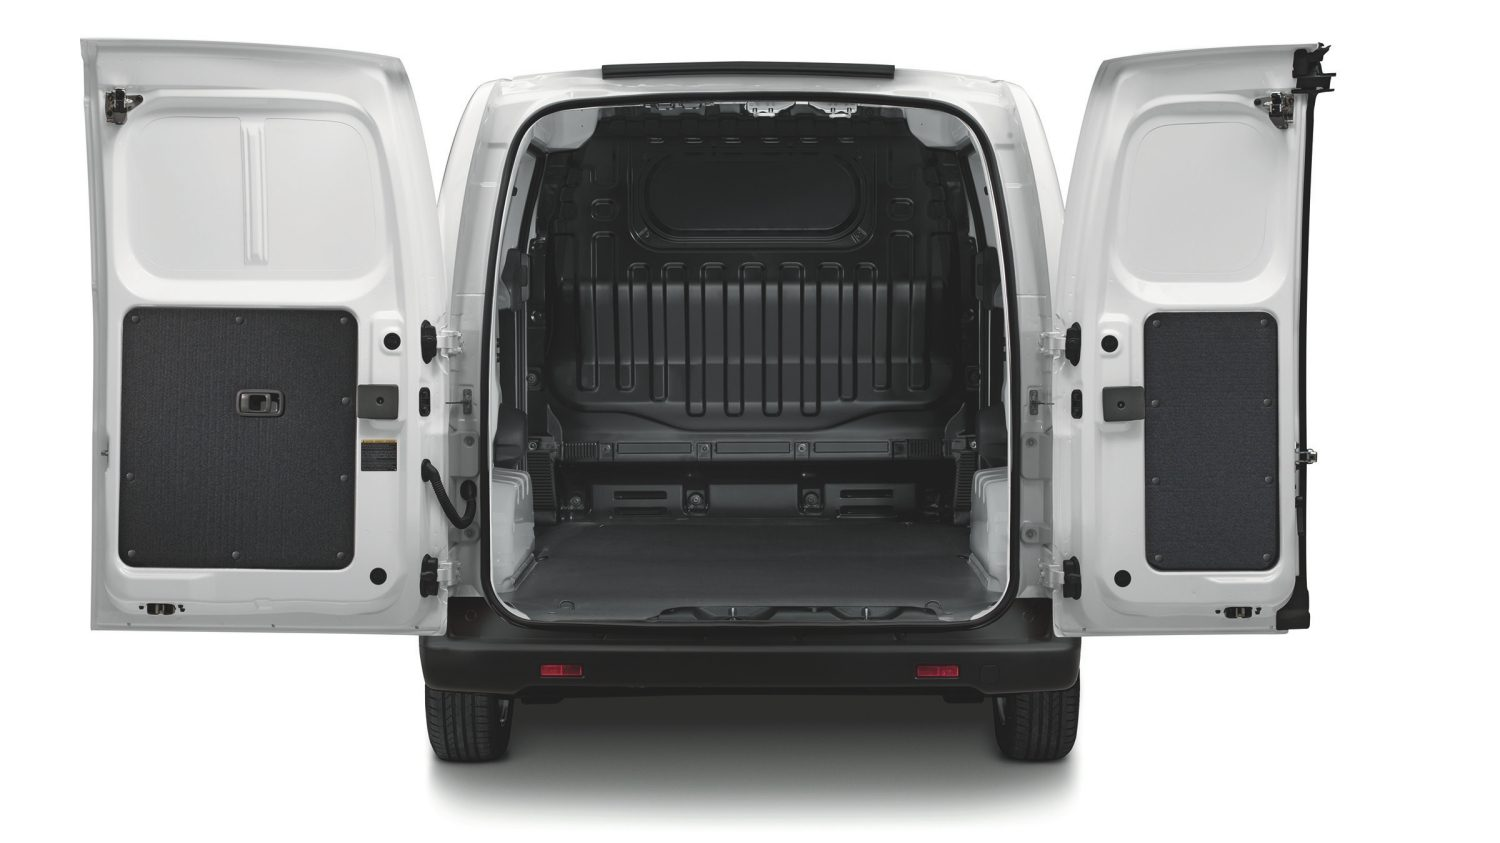 Van | Nissan e-NV200 | Electric van storage space